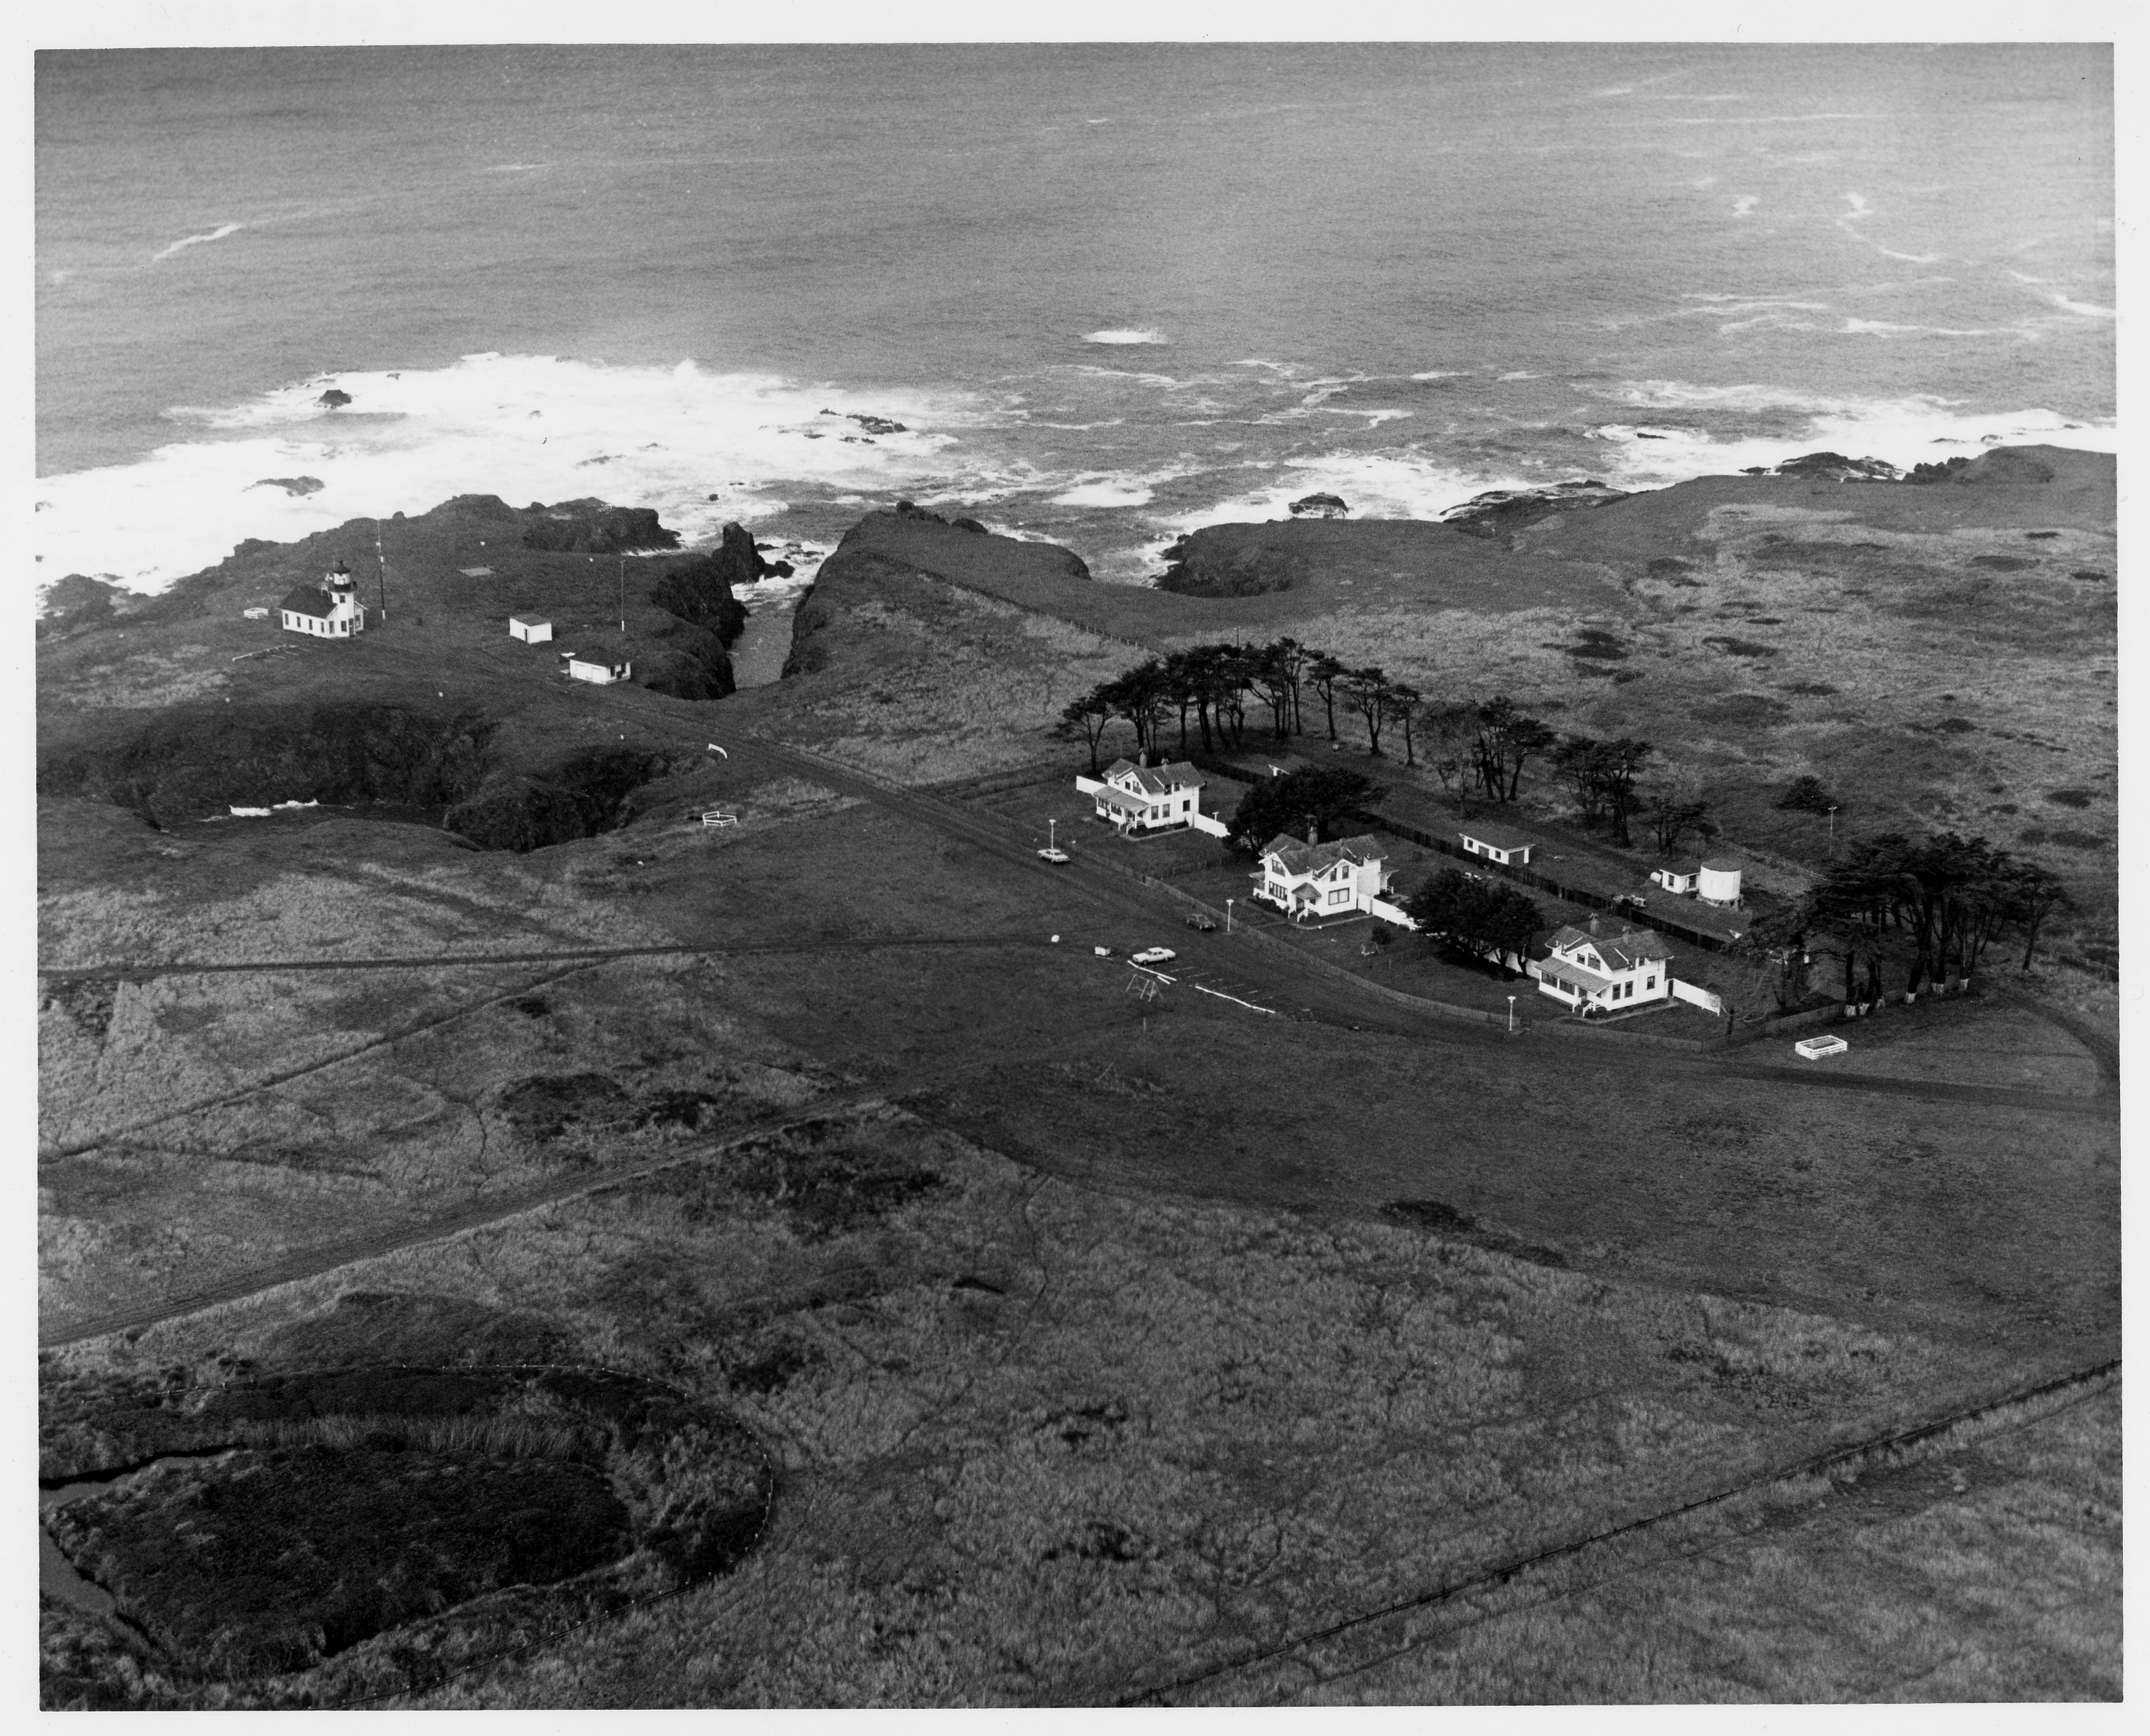 Point Cabrillo from the air in 1979